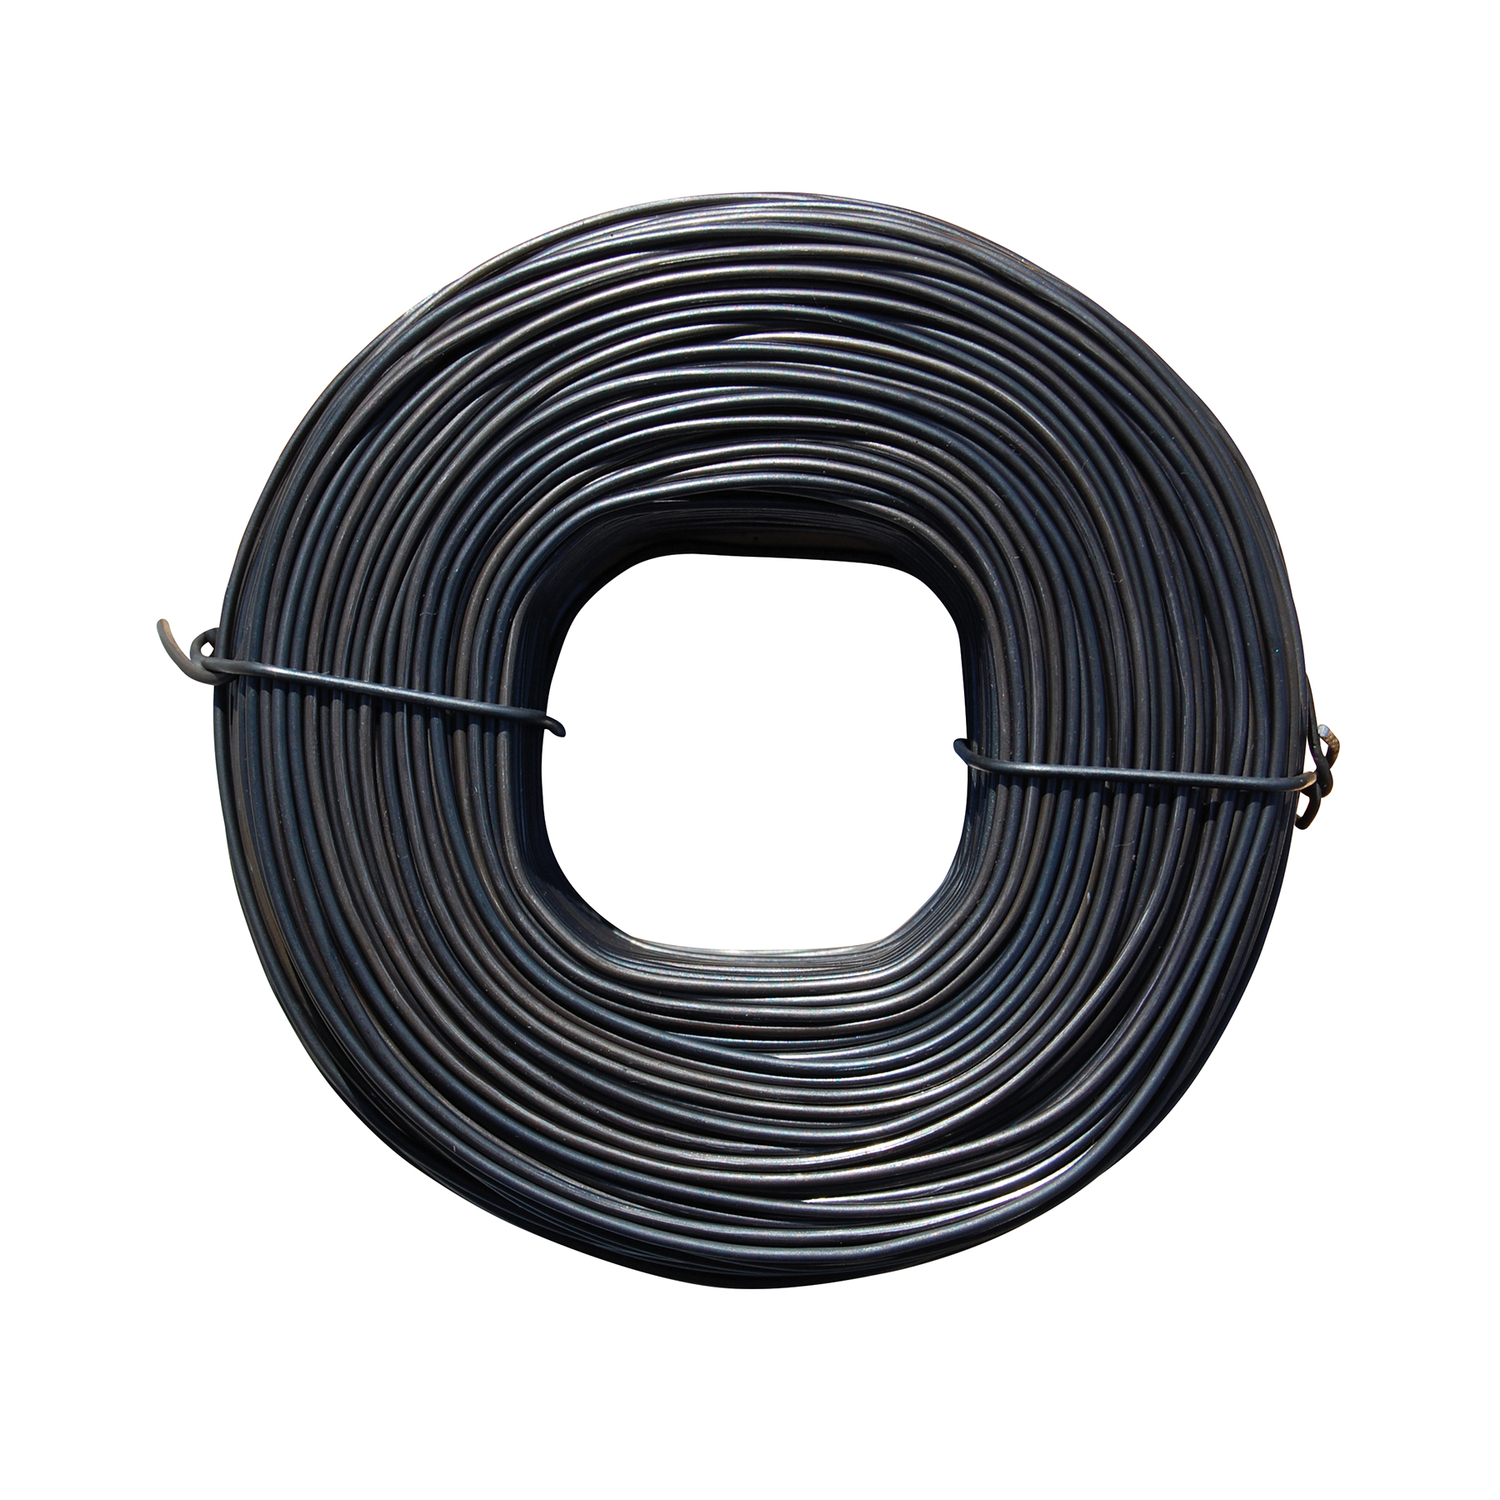 Keystone 5 in. W x 2.5 in. H Rebar Tie Wire 16 Ga. Annealed - Ace ...